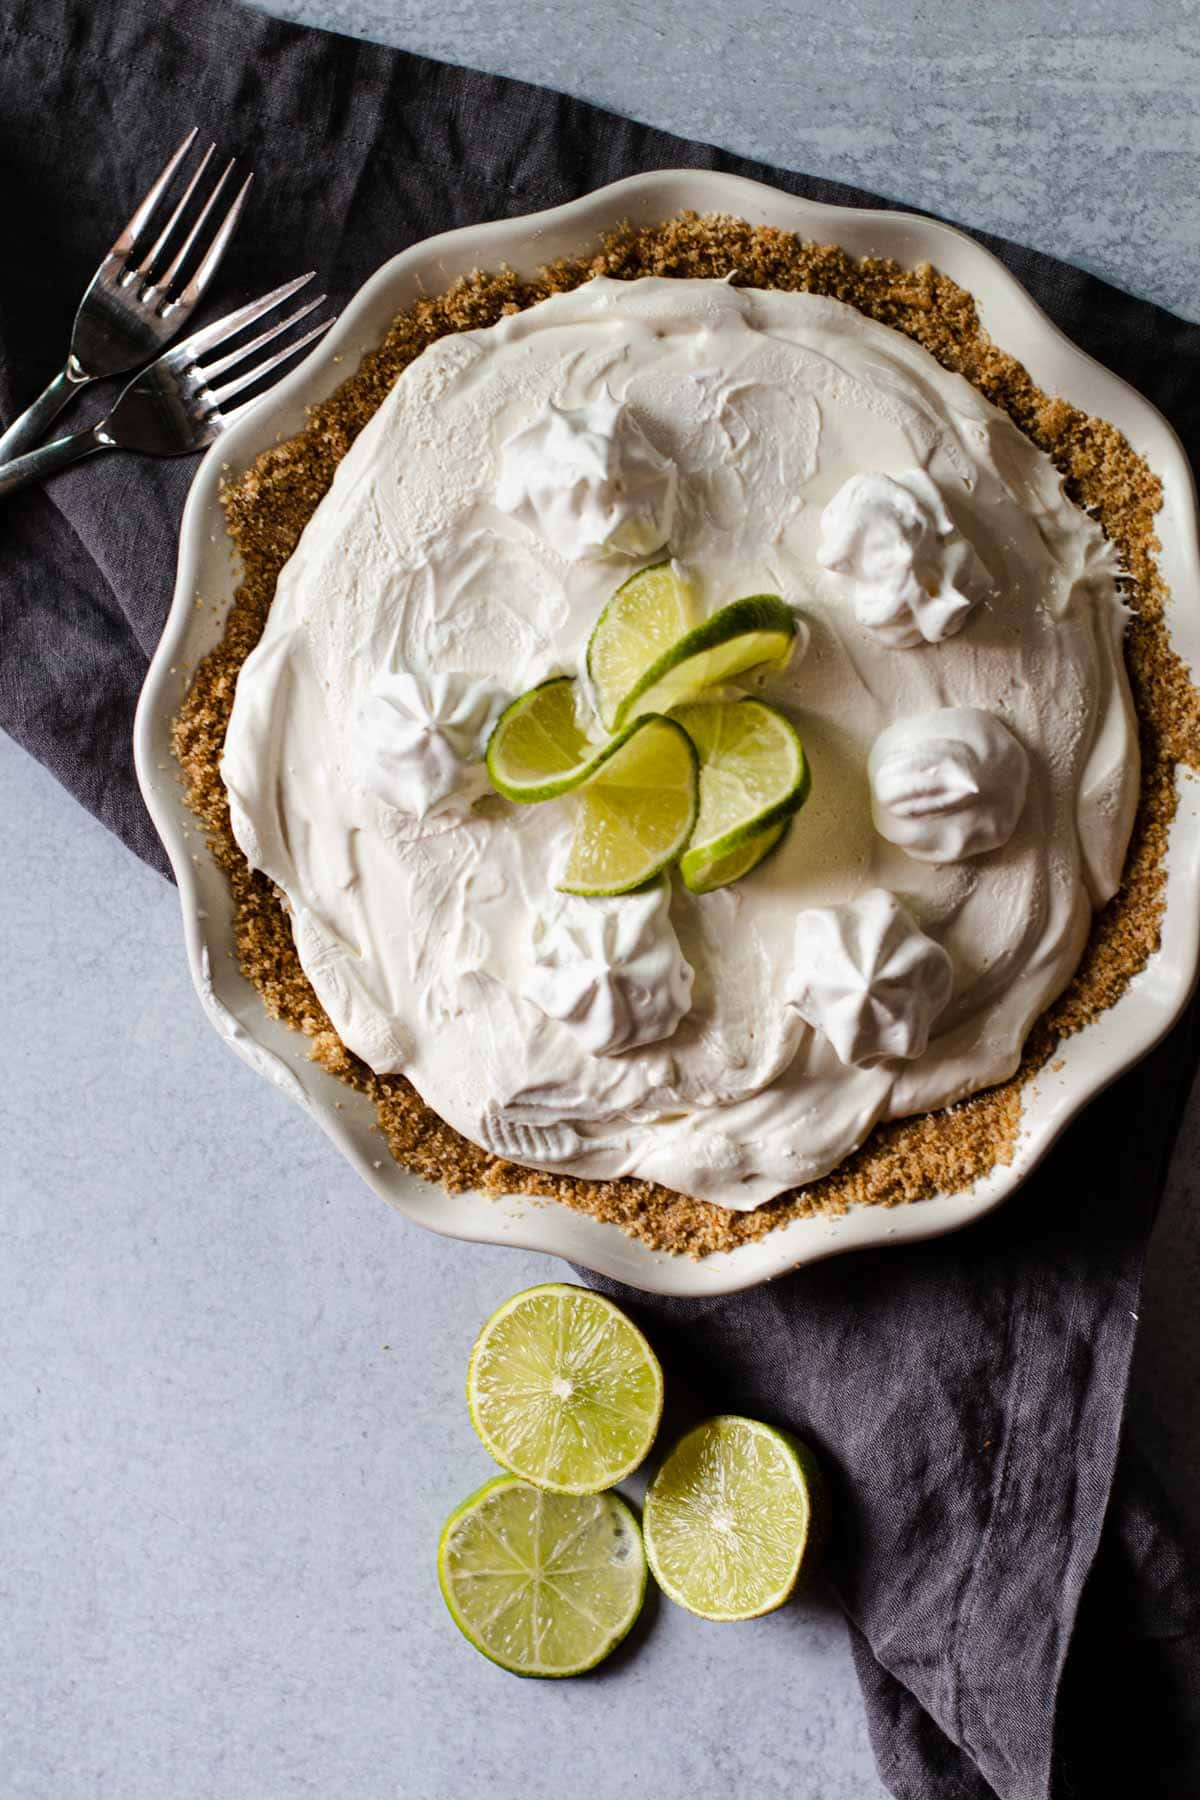 No bake key lime pie garnished with whipped cream and limes